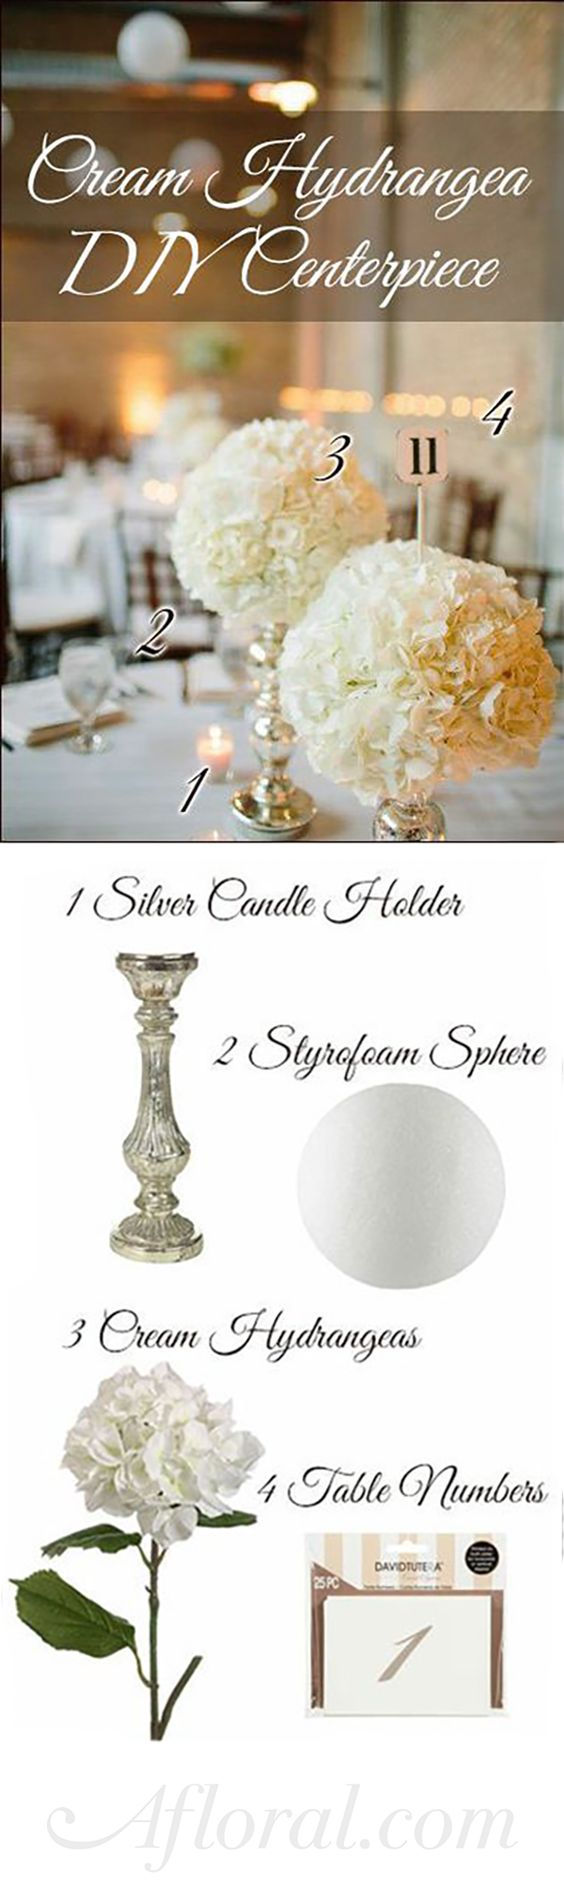 Silk Hydrangea Centerpieces Diy : Diy hydrangea centerpiece ideas for your wedding reception